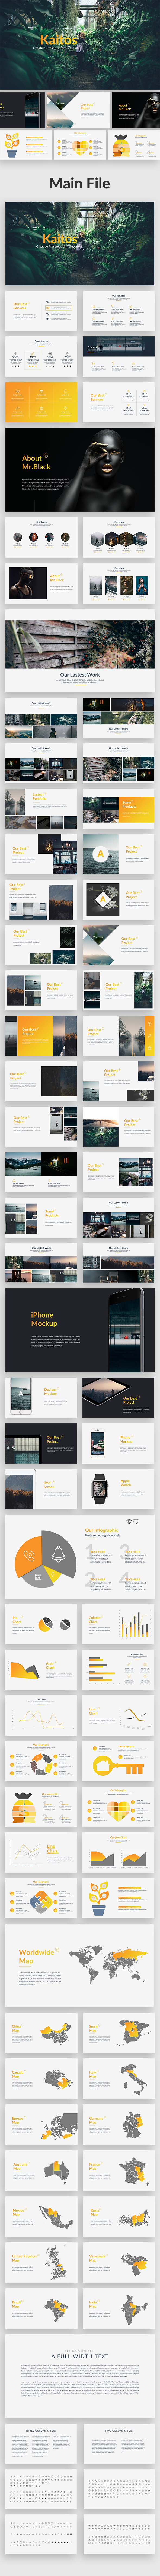 Kaitos - Creative Keynote Template - Creative Keynote Templates